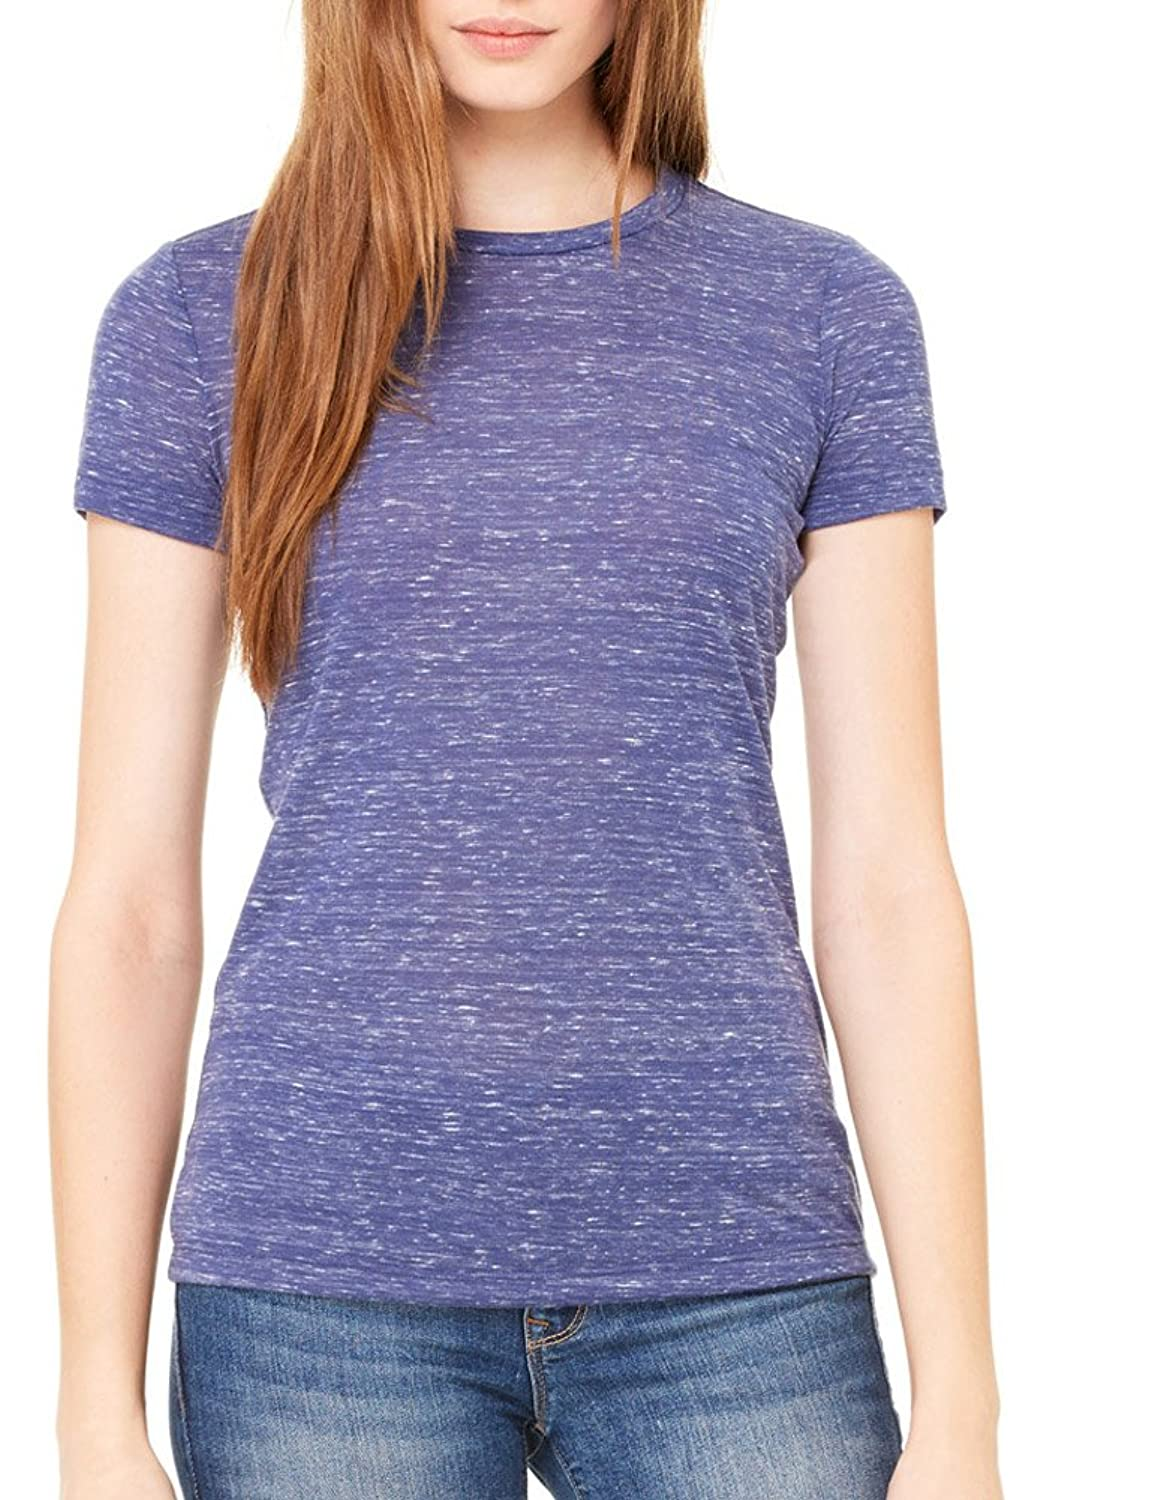 Bella + Canvas Womens Poly-Cotton Short-Sleeve T-Shirt (6650) NAVY MARBLE